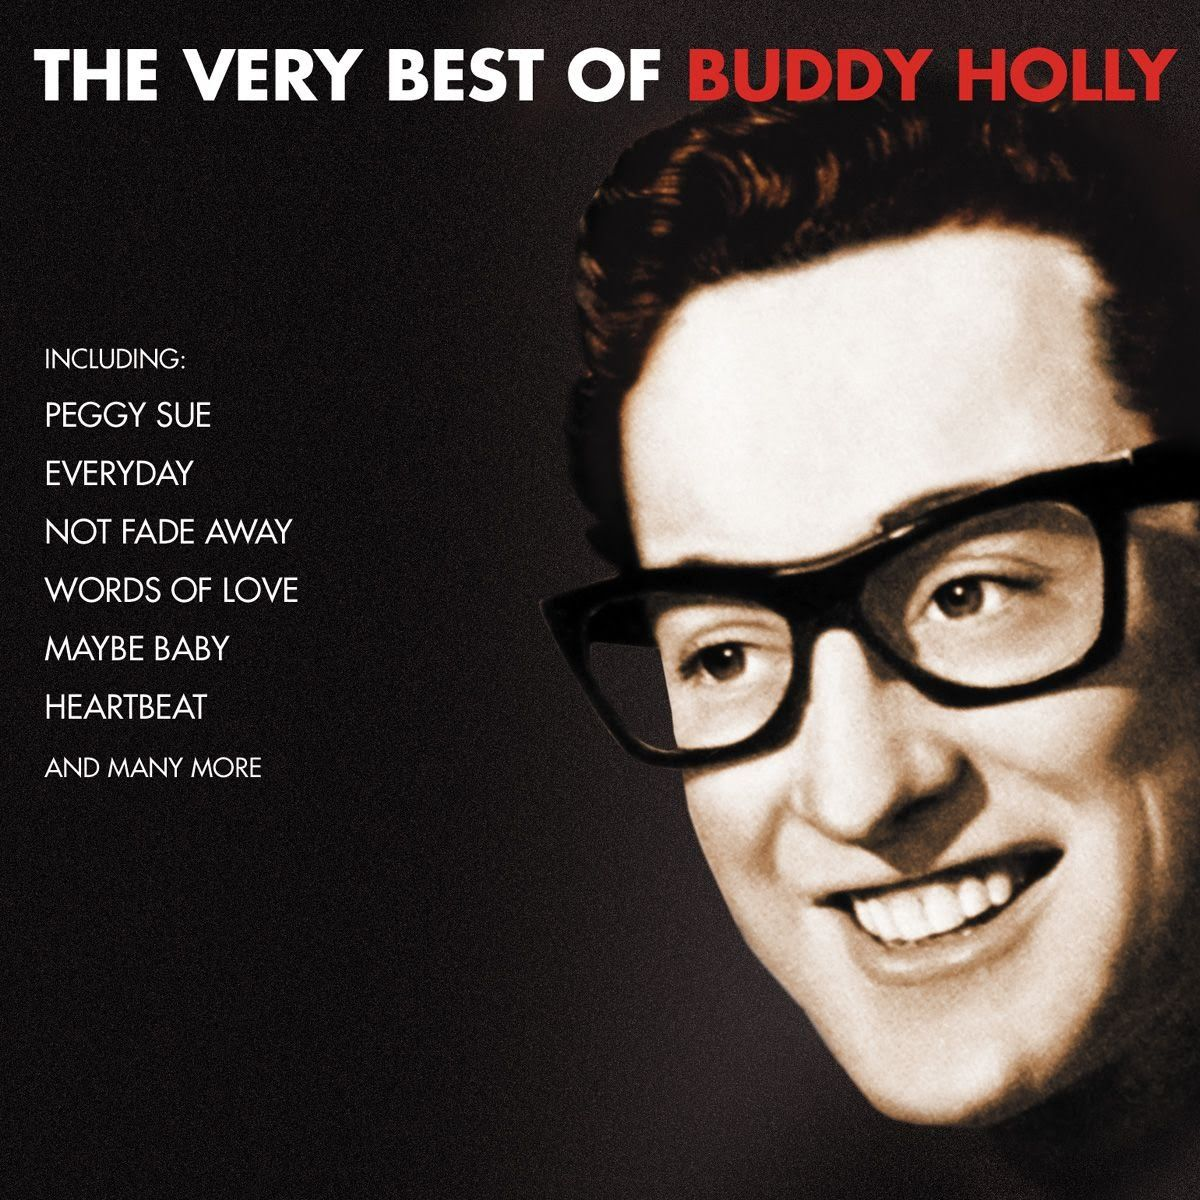 Buddy Holly - The Very Best Of (Not Now Music) [Full Album]